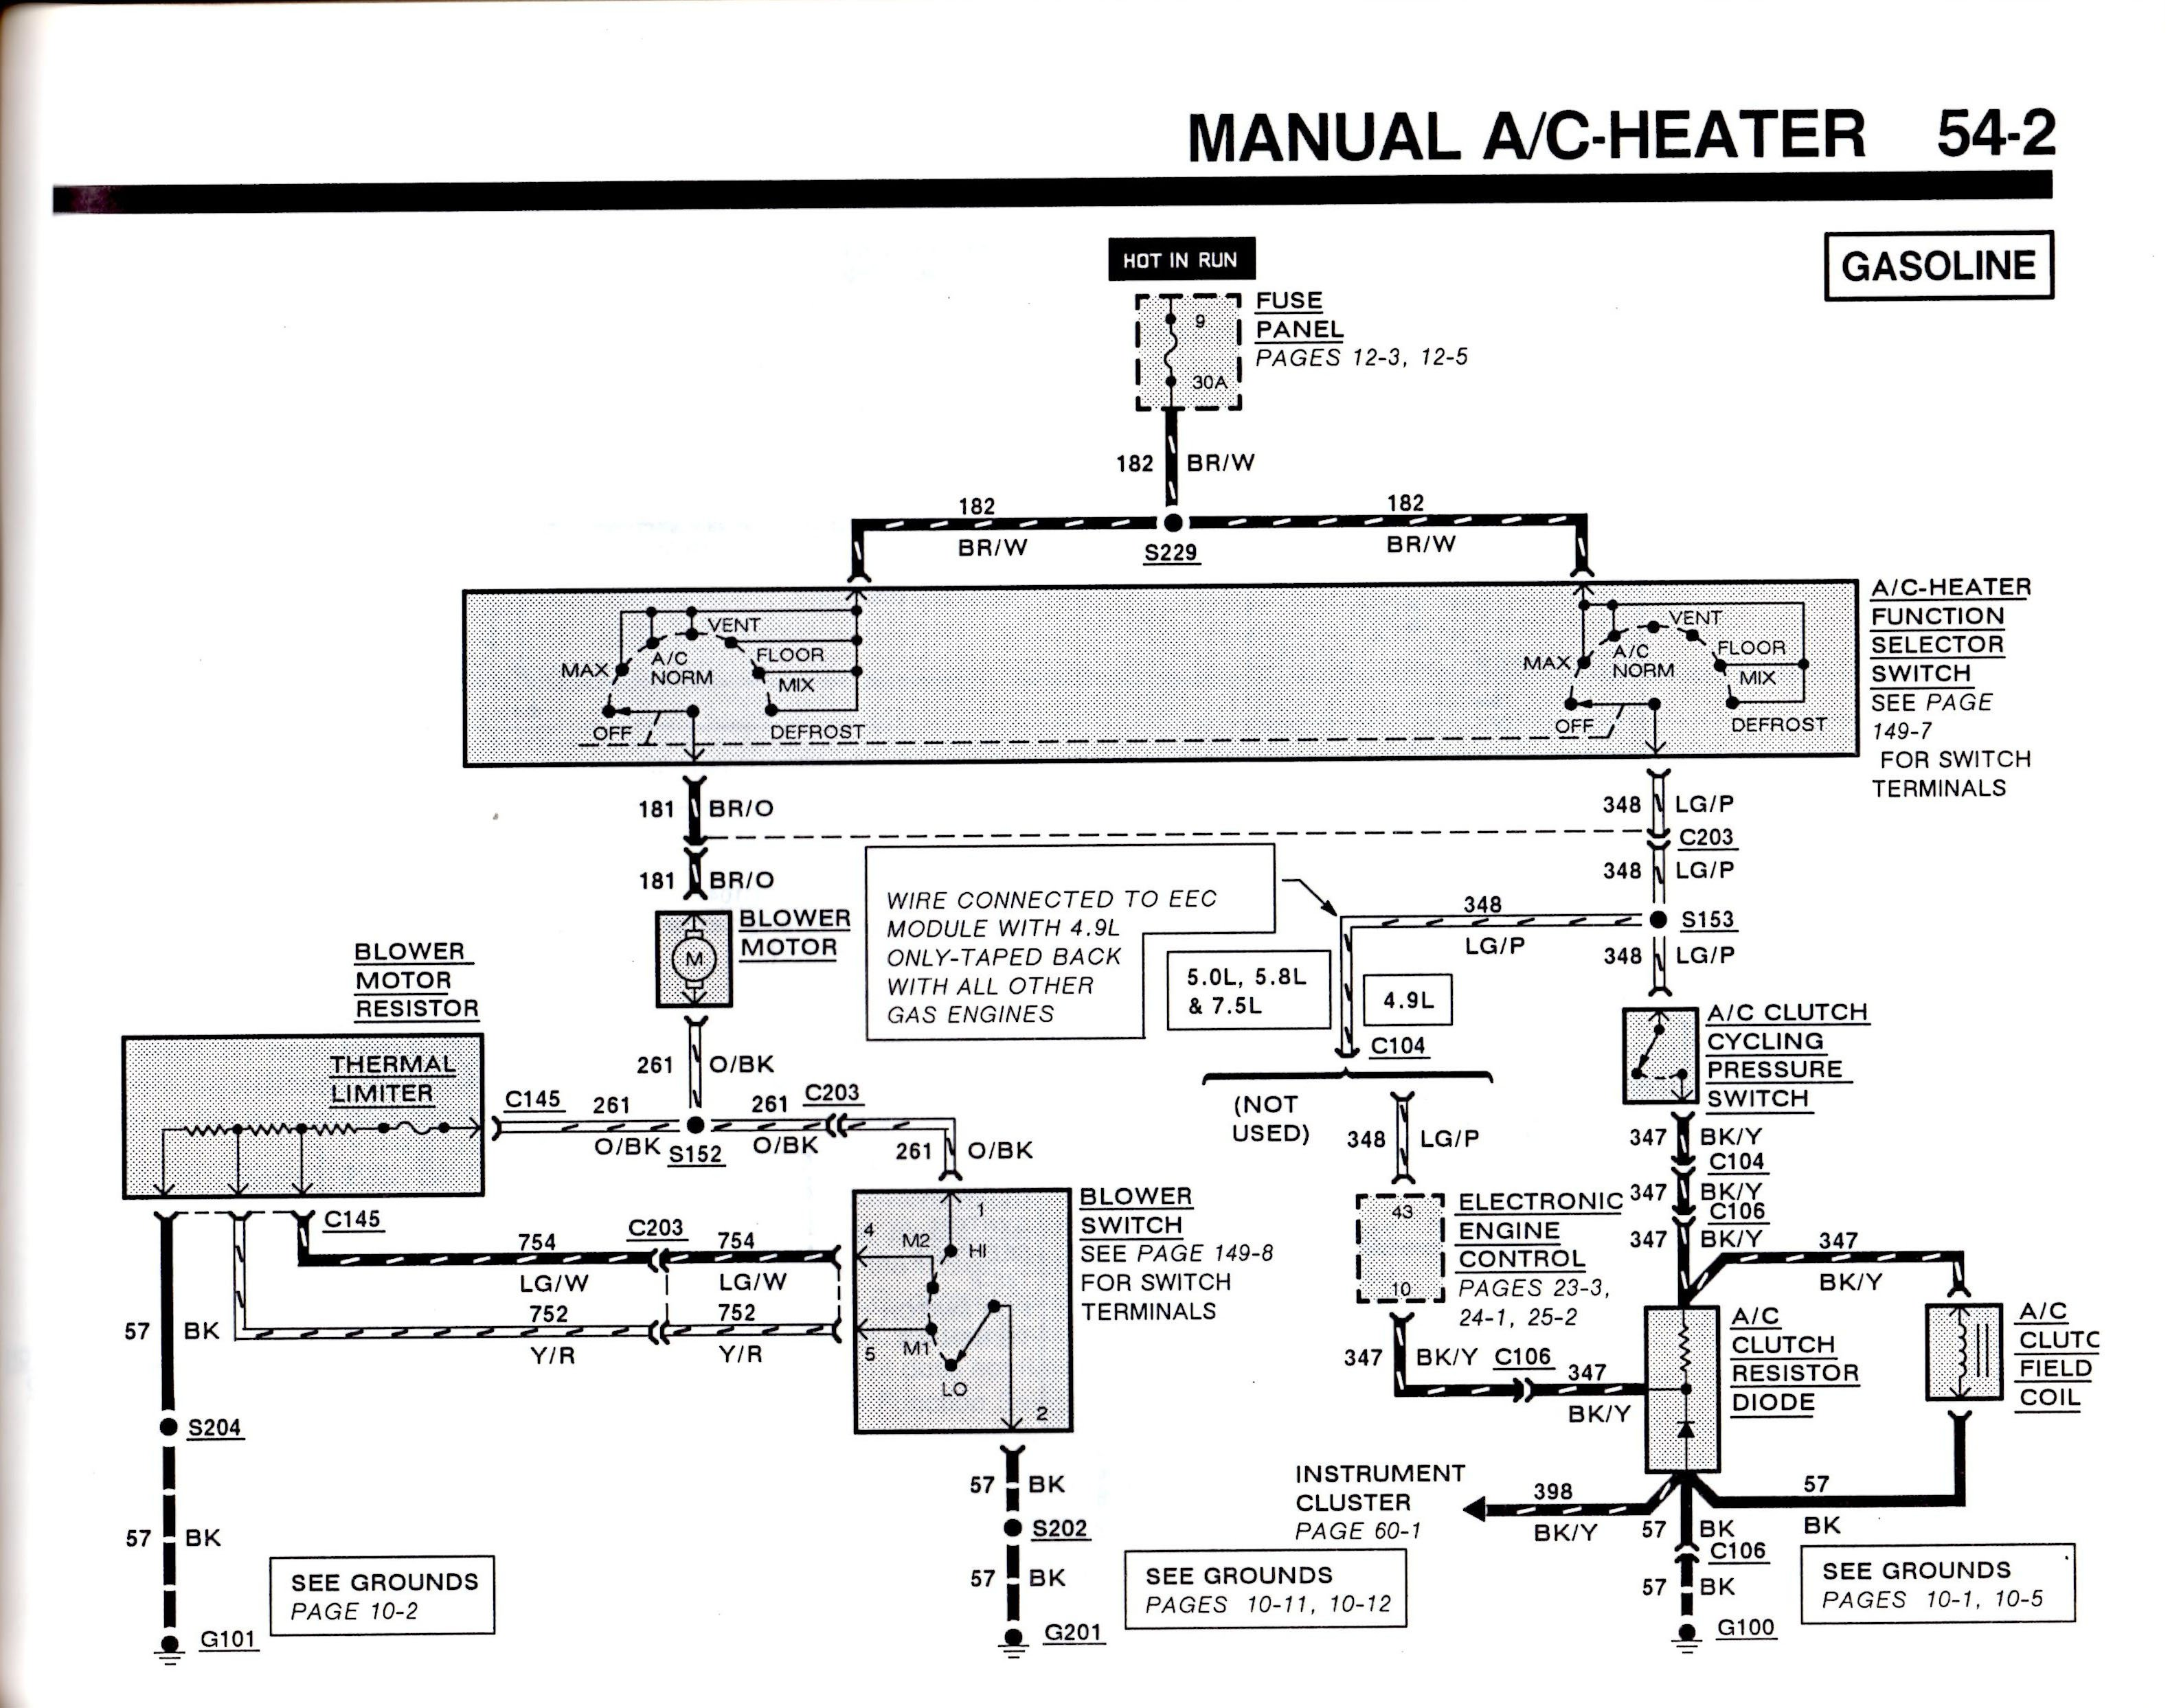 2003 Ford F 150 Ac Wiring Diagram - Wiring Diagram Data Ford Truck Air Conditioner Schematic Diagram on basic refrigeration cycle diagram, how air conditioning works diagram, air conditioning air flow direction, air conditioning system schematic, air conditioner overhead view, air conditioning cycle diagram, air conditioner plan view, air conditioner process, truck in air conditioning wiring diagram, air conditioner functions, electric hot water tank wiring diagram, air conditioner troubleshooting, air conditioner outlet, air conditioner how it works, air handler diagram, air conditioning cycle basic, air conditioner parts, 2006 ford mustang ac wiring diagram, air conditioning components diagram, air conditioner line drawing,